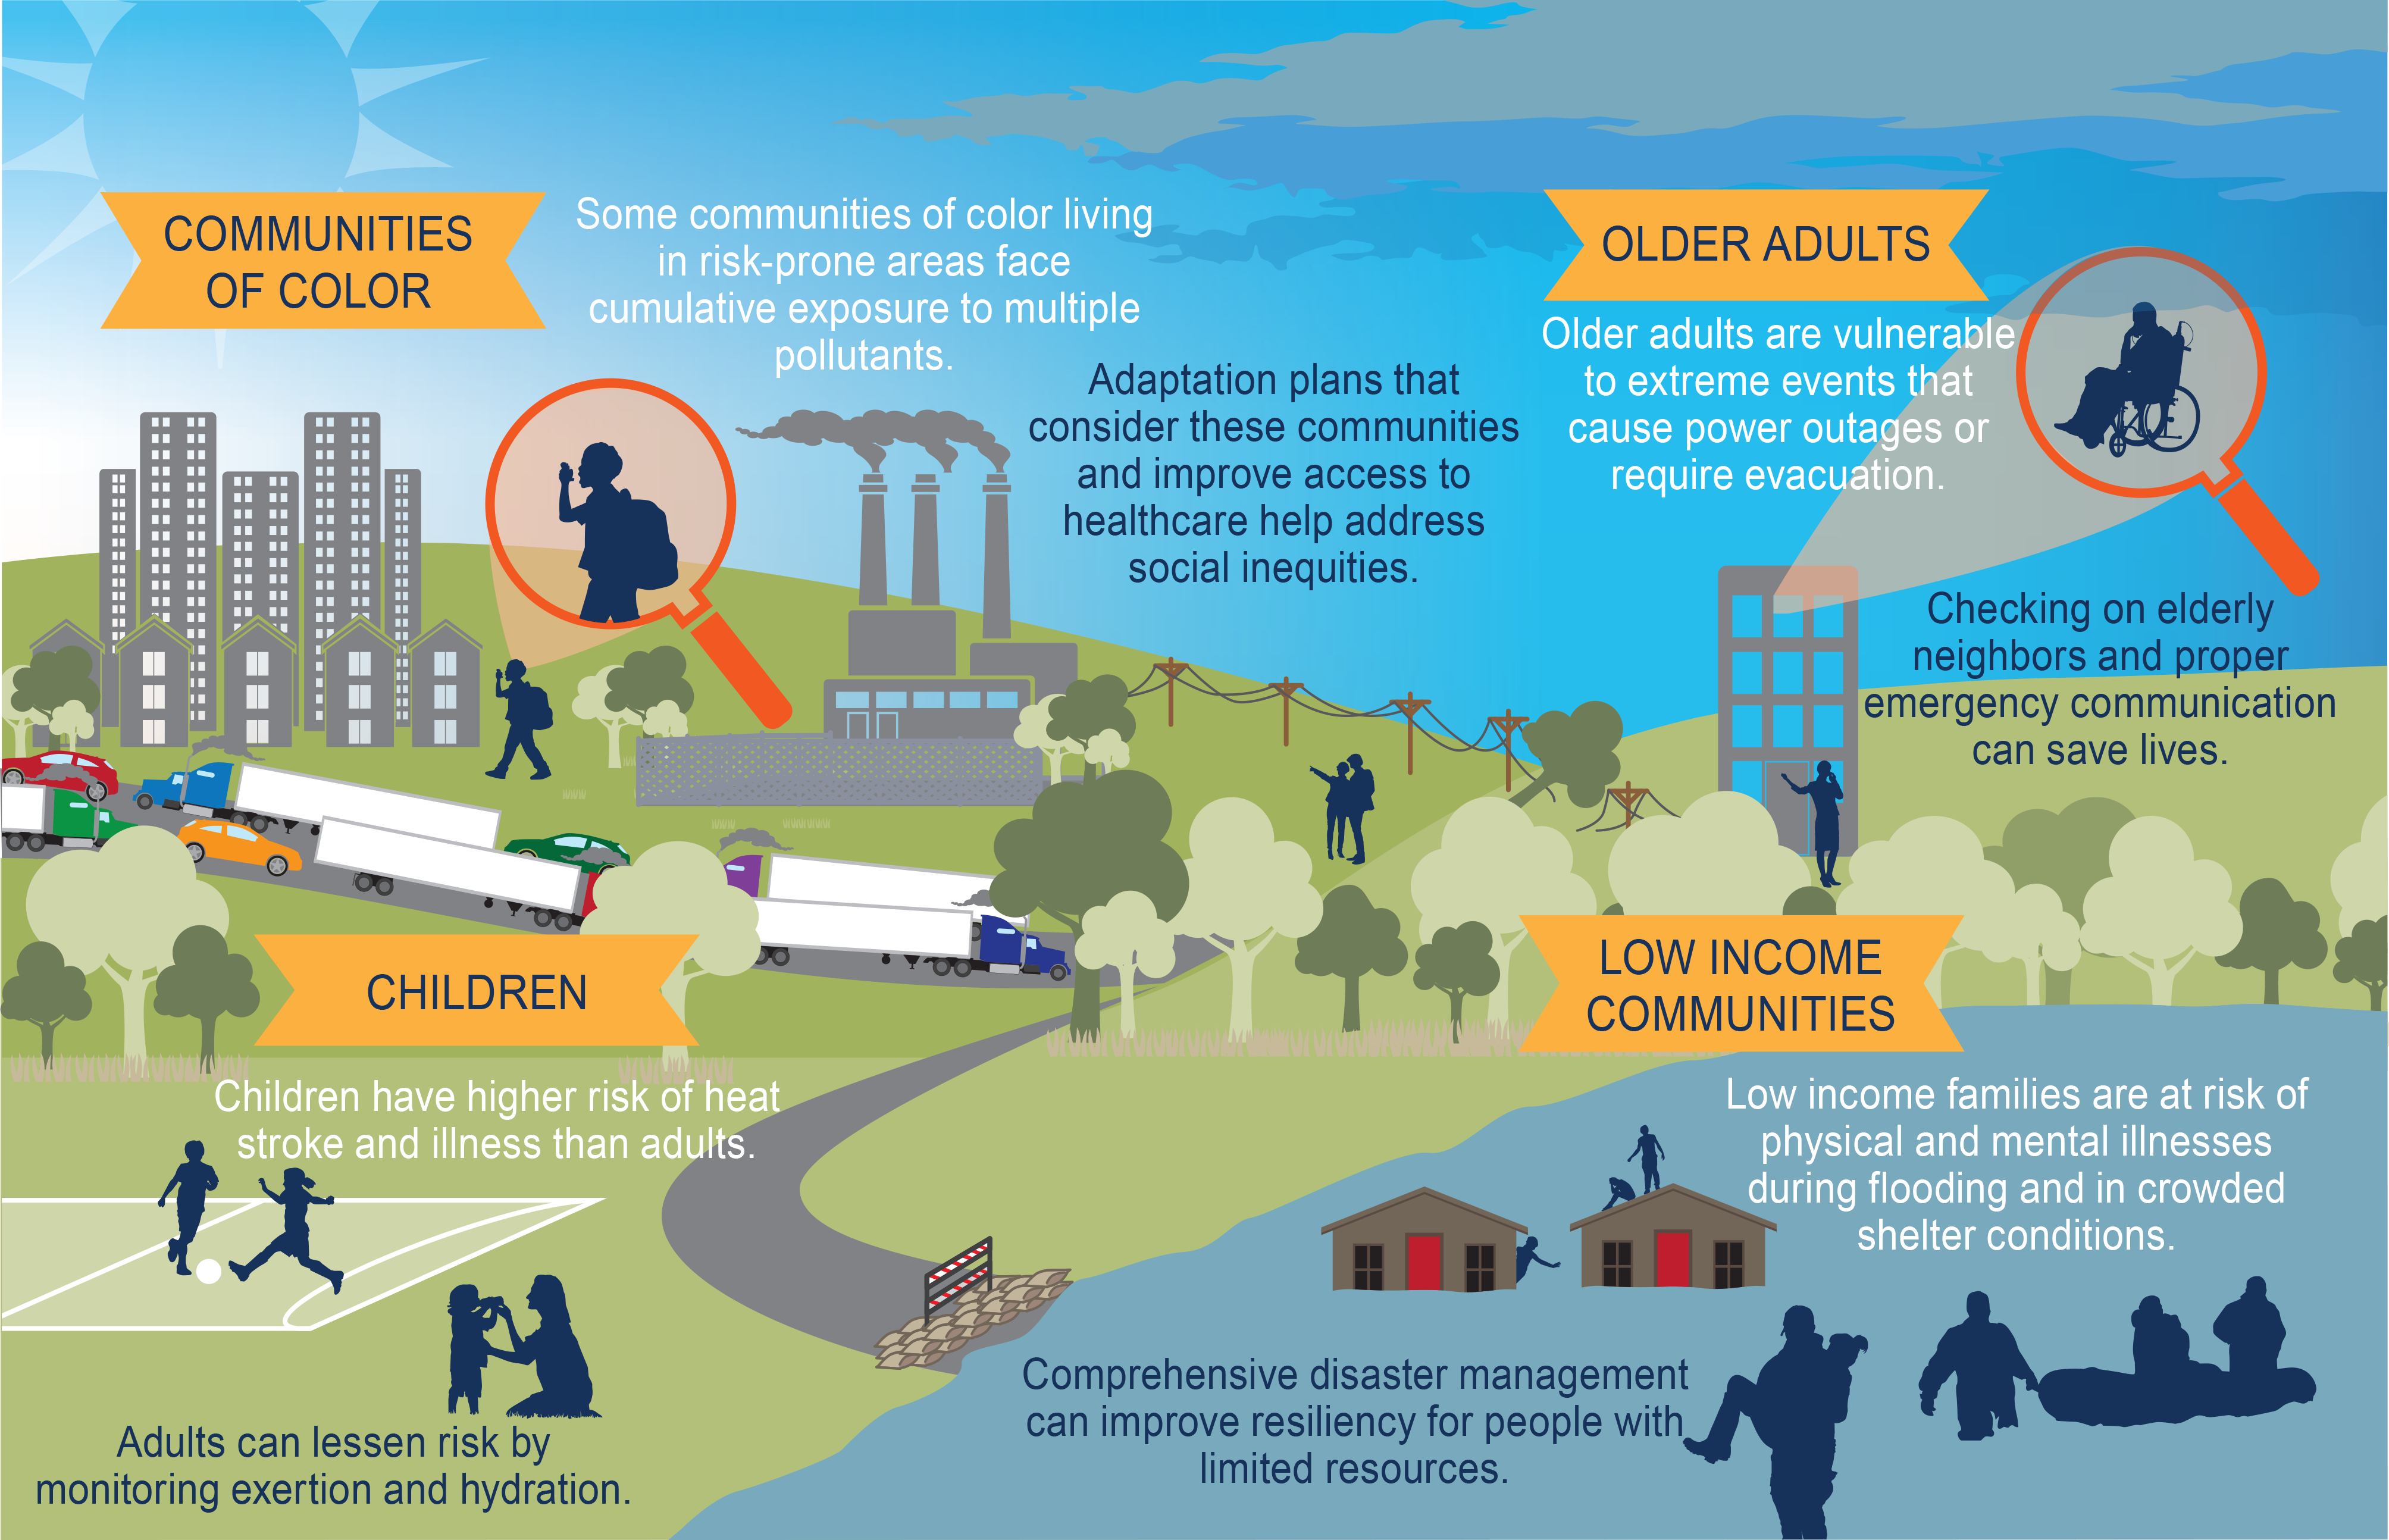 An infographic showing climate-related health risks to communities of color, older adults, children, and low income communities. For full details, visit https://nca2018.globalchange.gov/chapter/14/